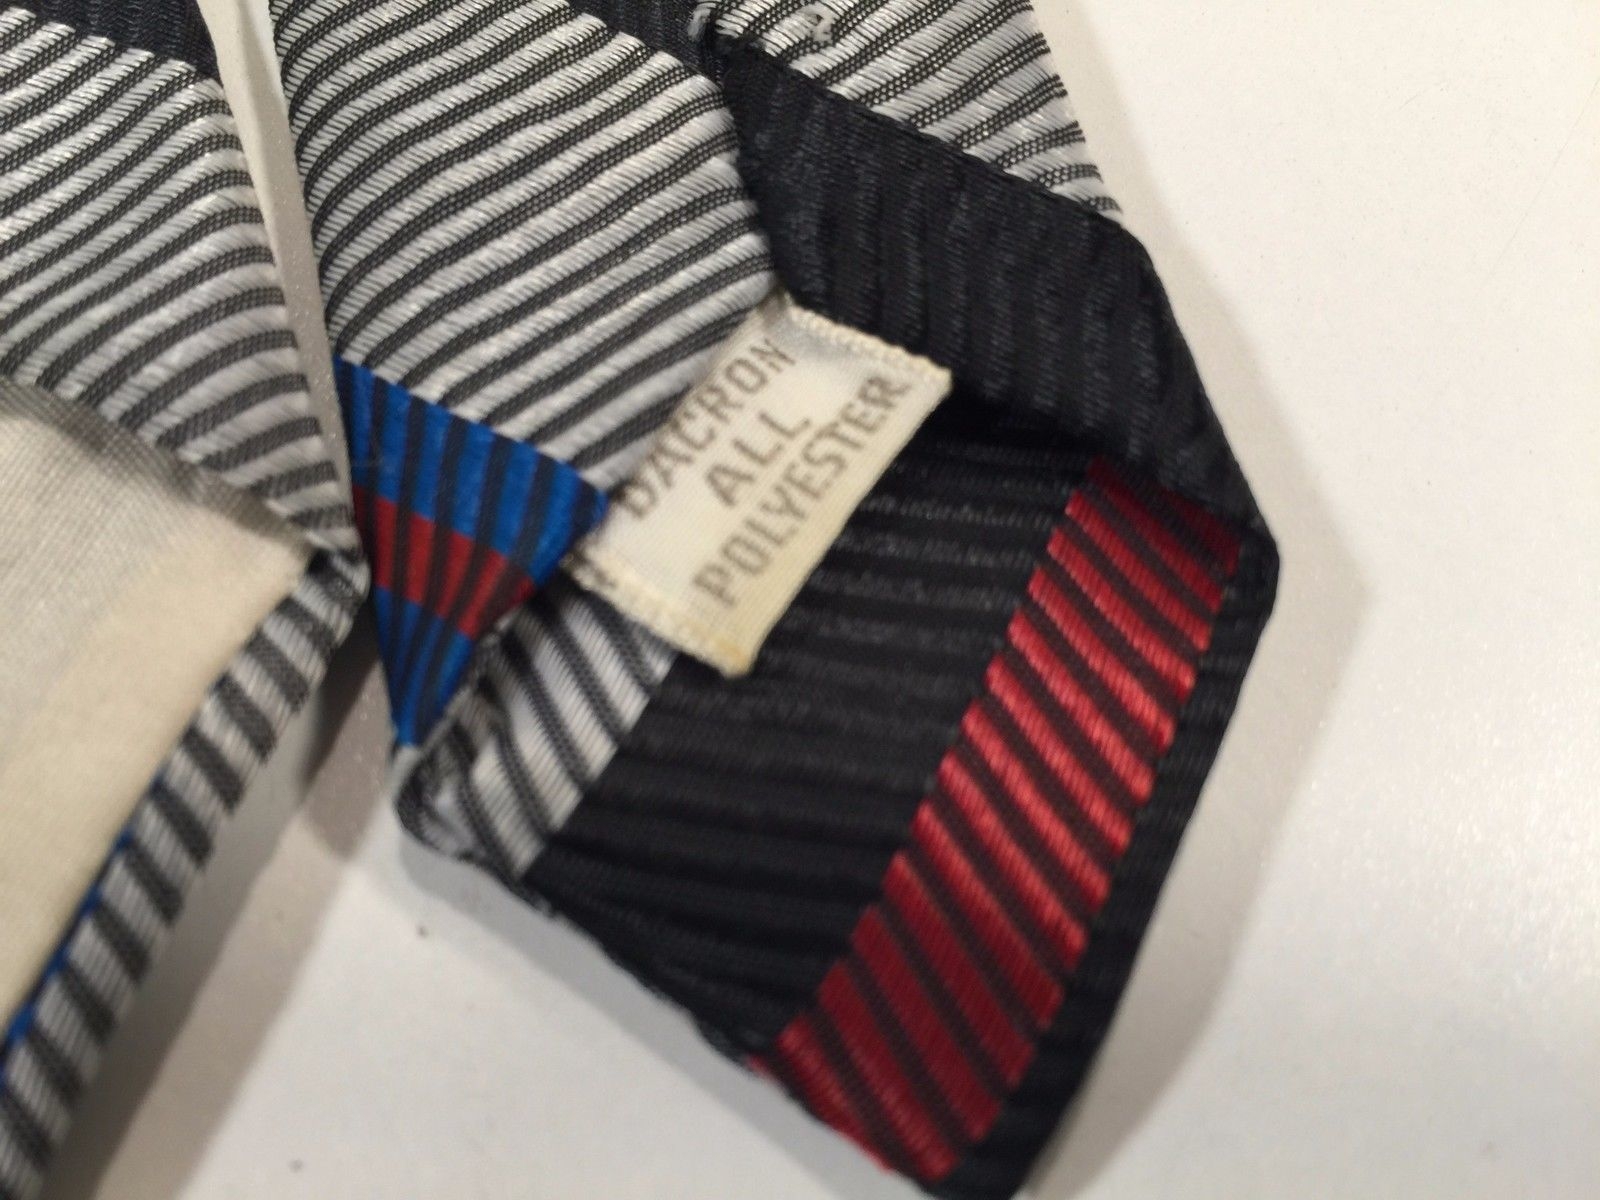 Vintage Tie - Blue, Red, Black, Grey - Polyester - Unbranded - Stripes